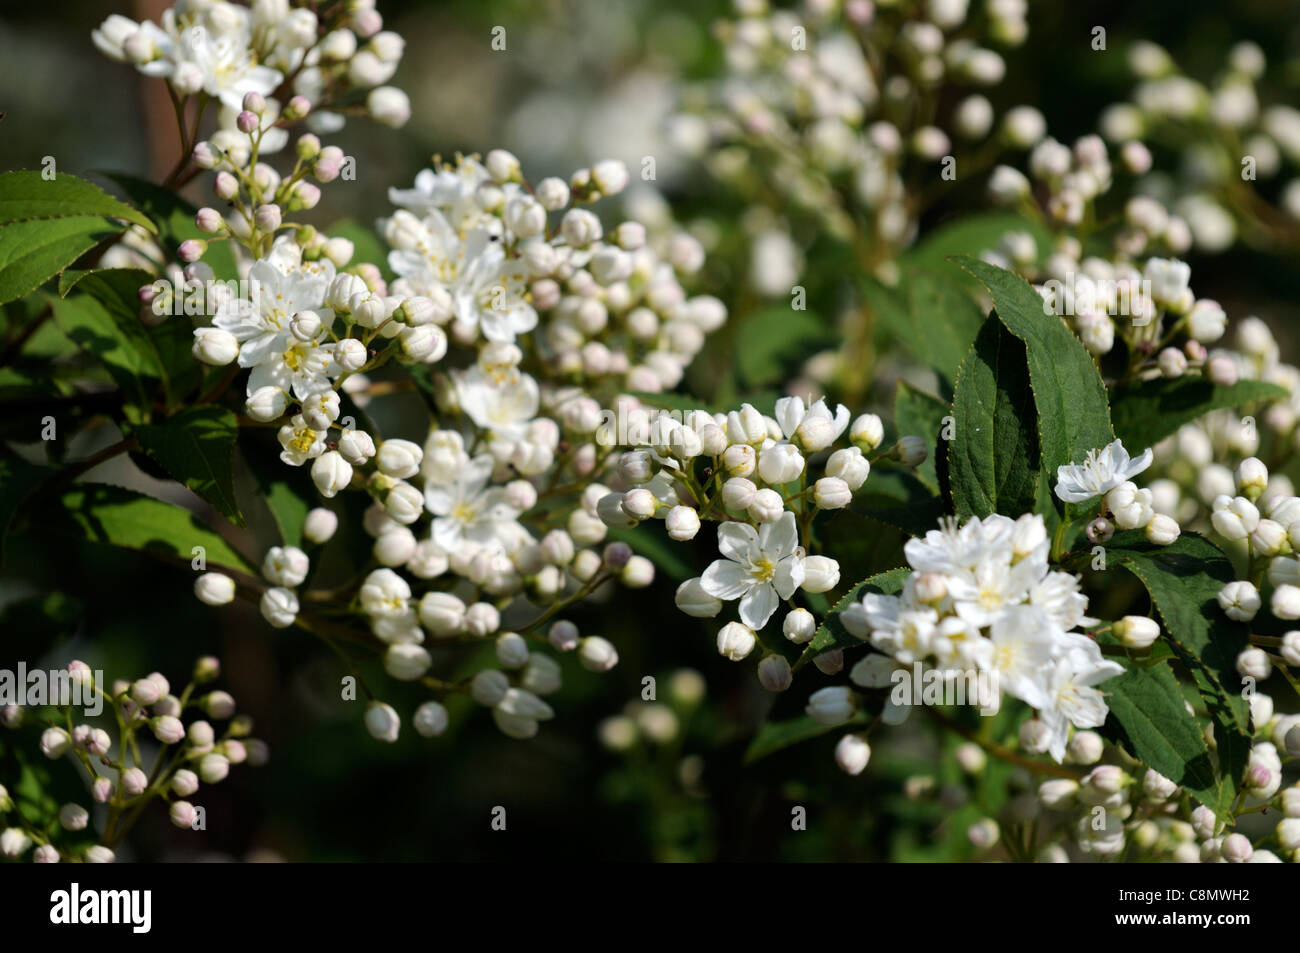 Deutzia x lemoinei flowers bloom blossom hardy perennial deciduous deutzia x lemoinei flowers bloom blossom hardy perennial deciduous shrub white flowers spring dhlflorist Image collections